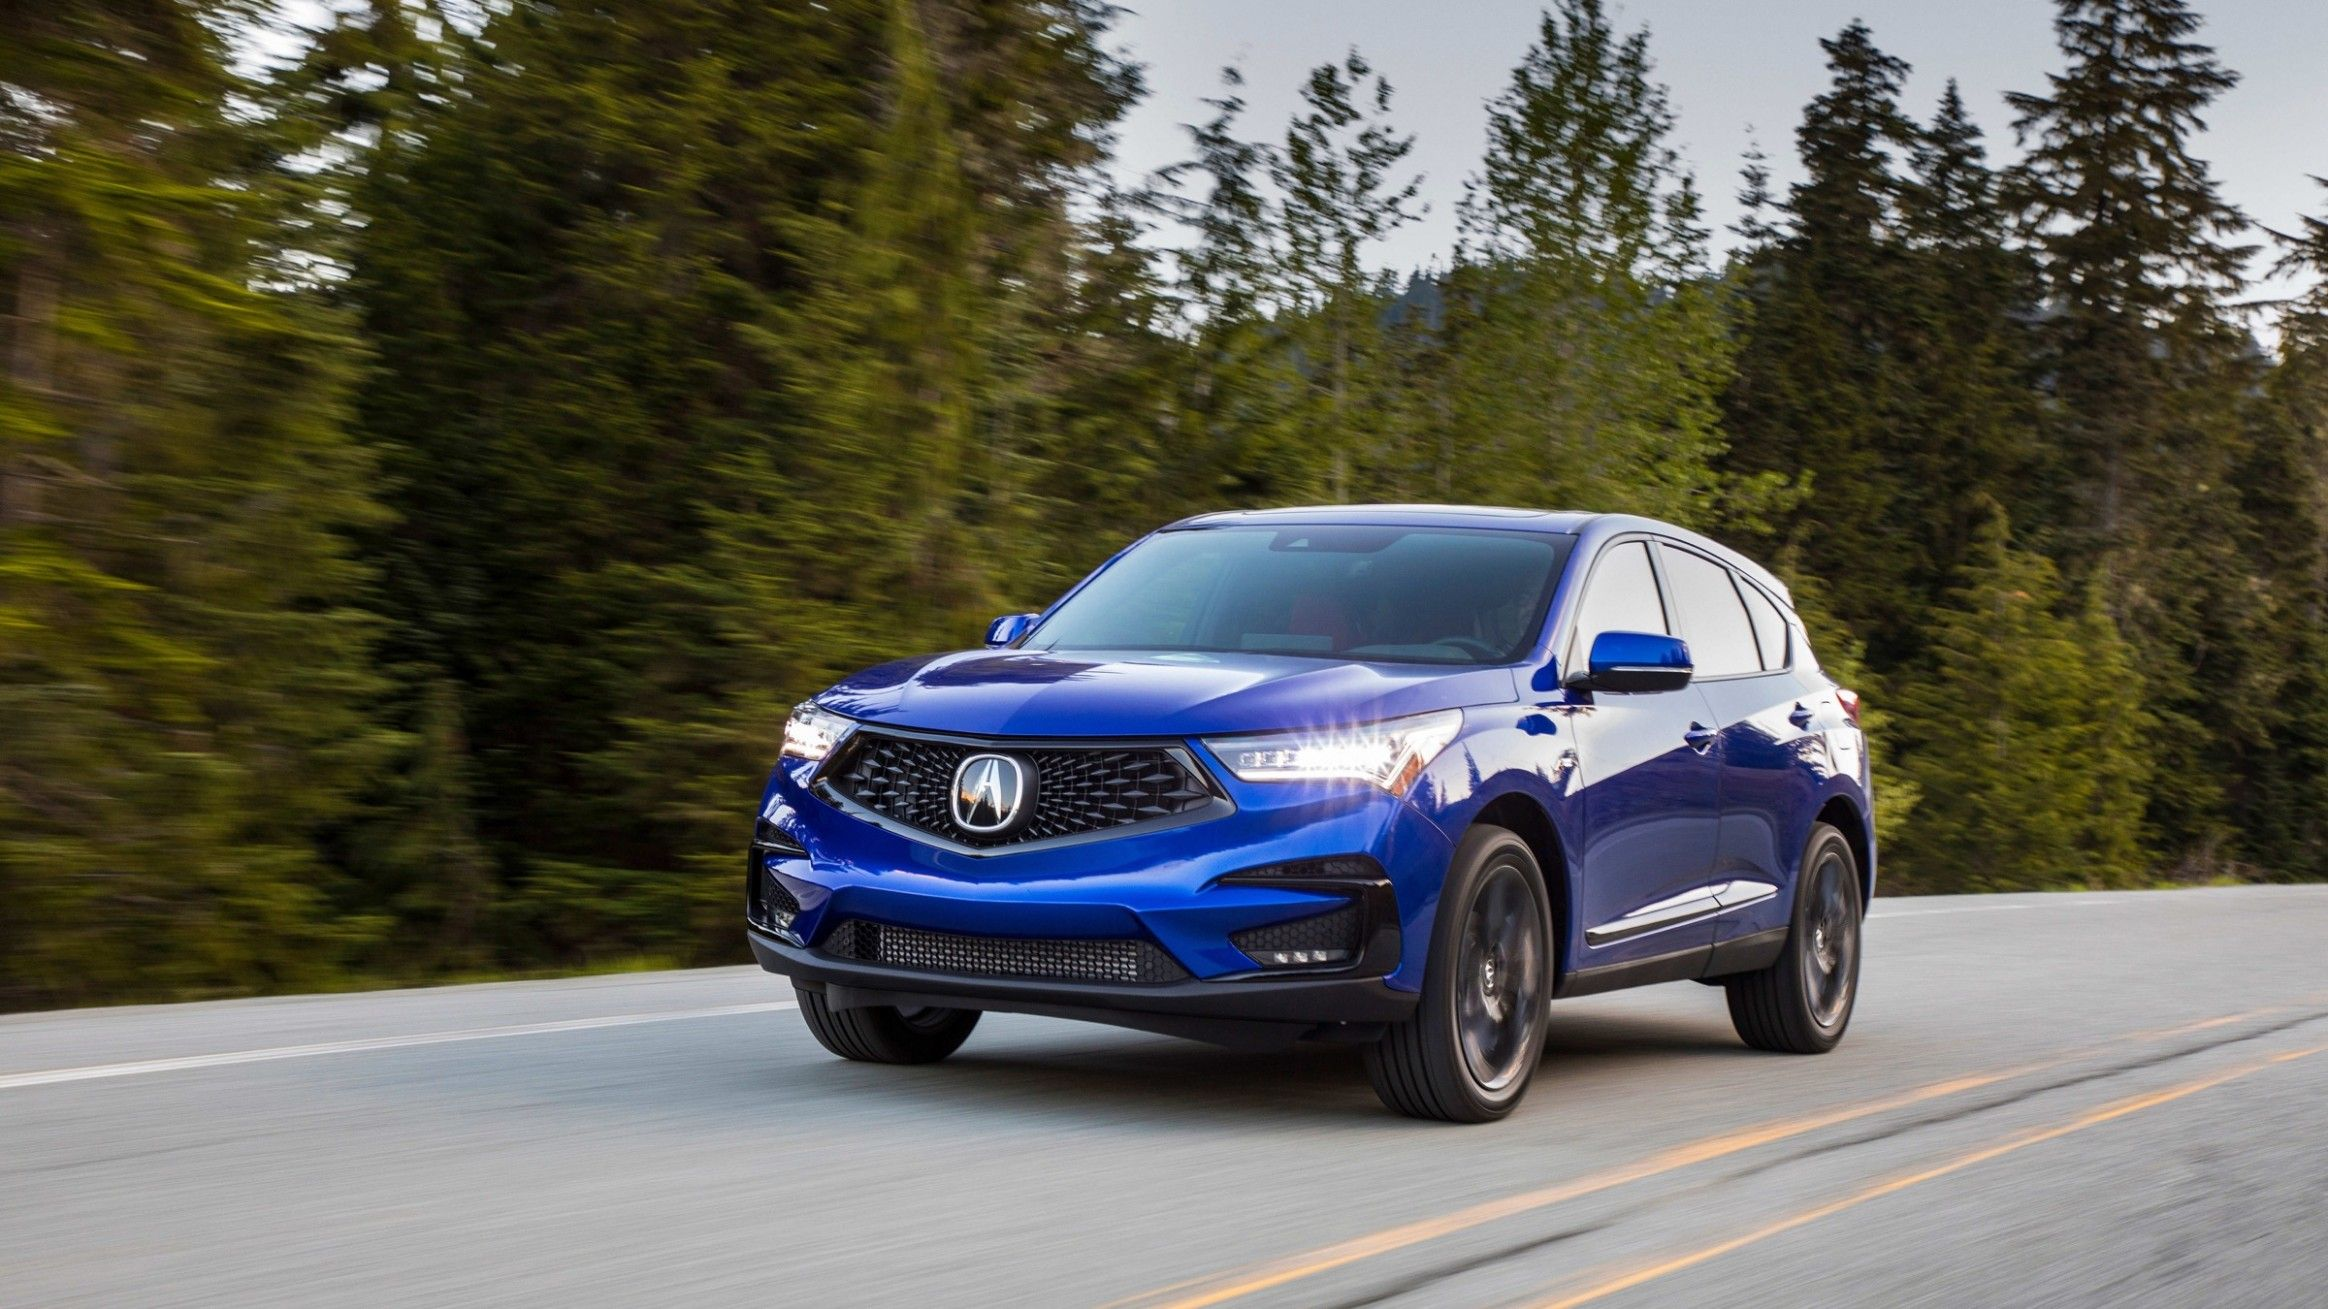 10 Precautions You Must Take Before Attending 2020 Acura Tl